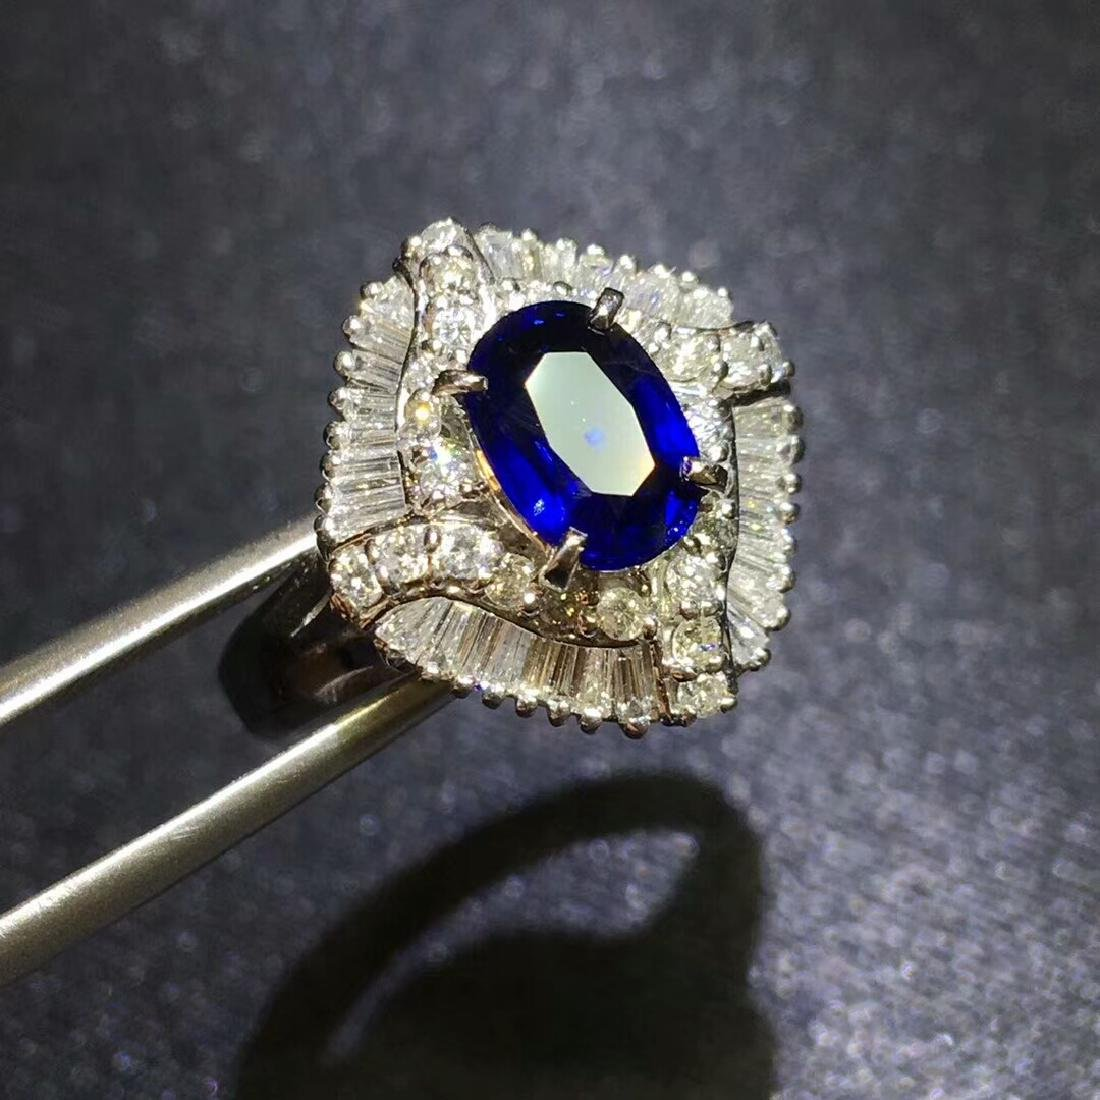 1.27ct Sapphire in Ring 18kt Gold - 4